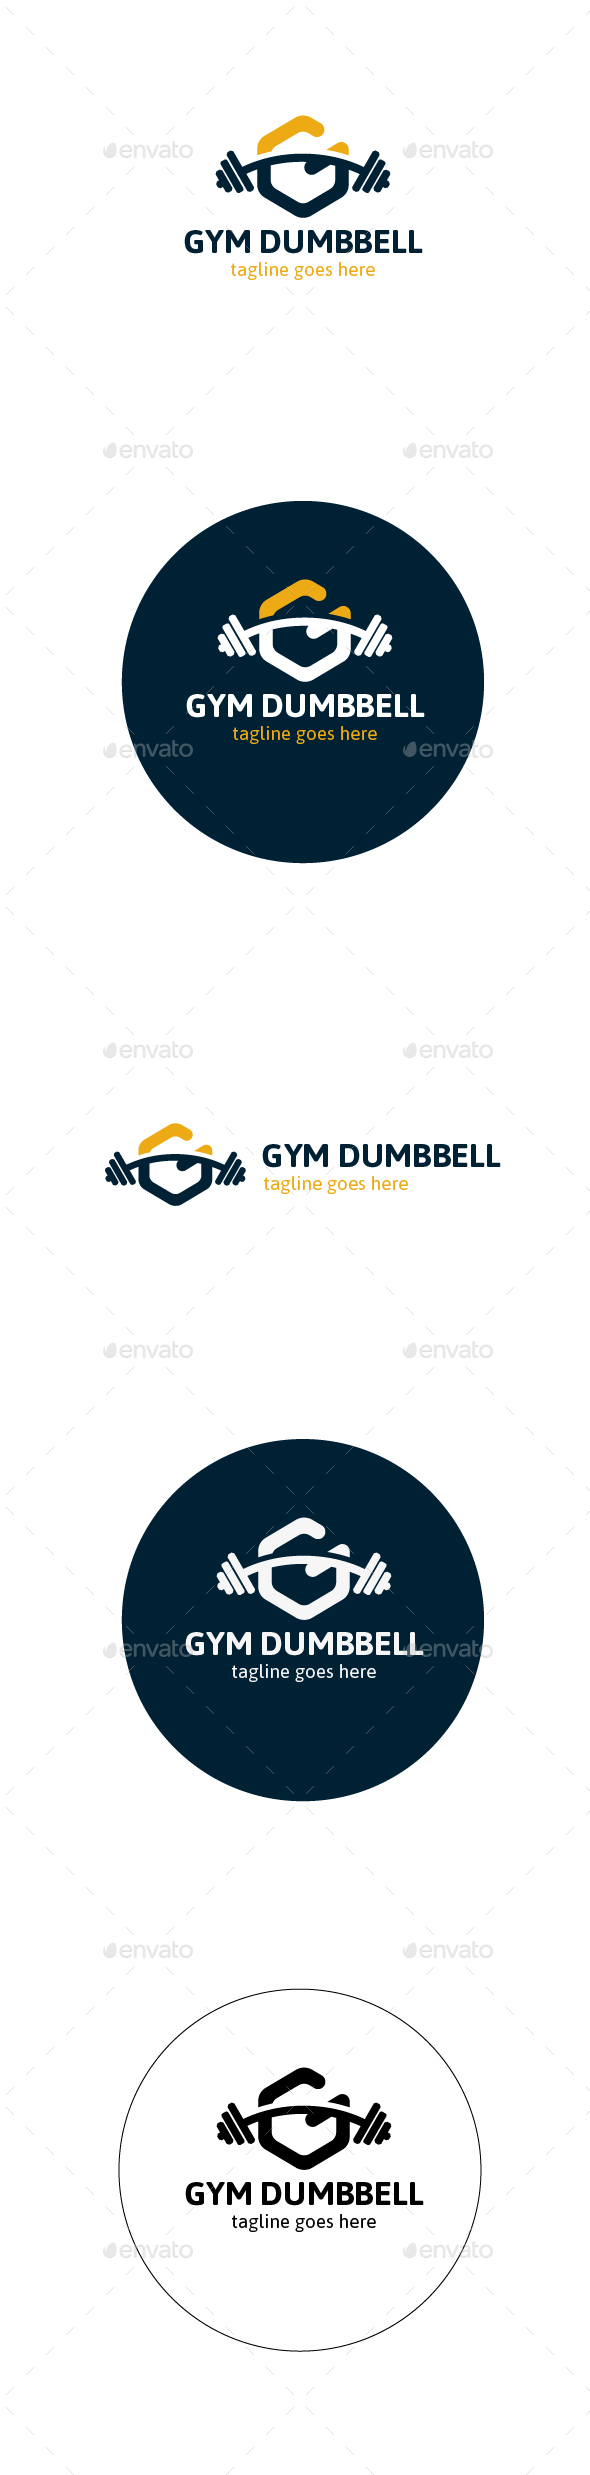 Gym Dumbbell Logo